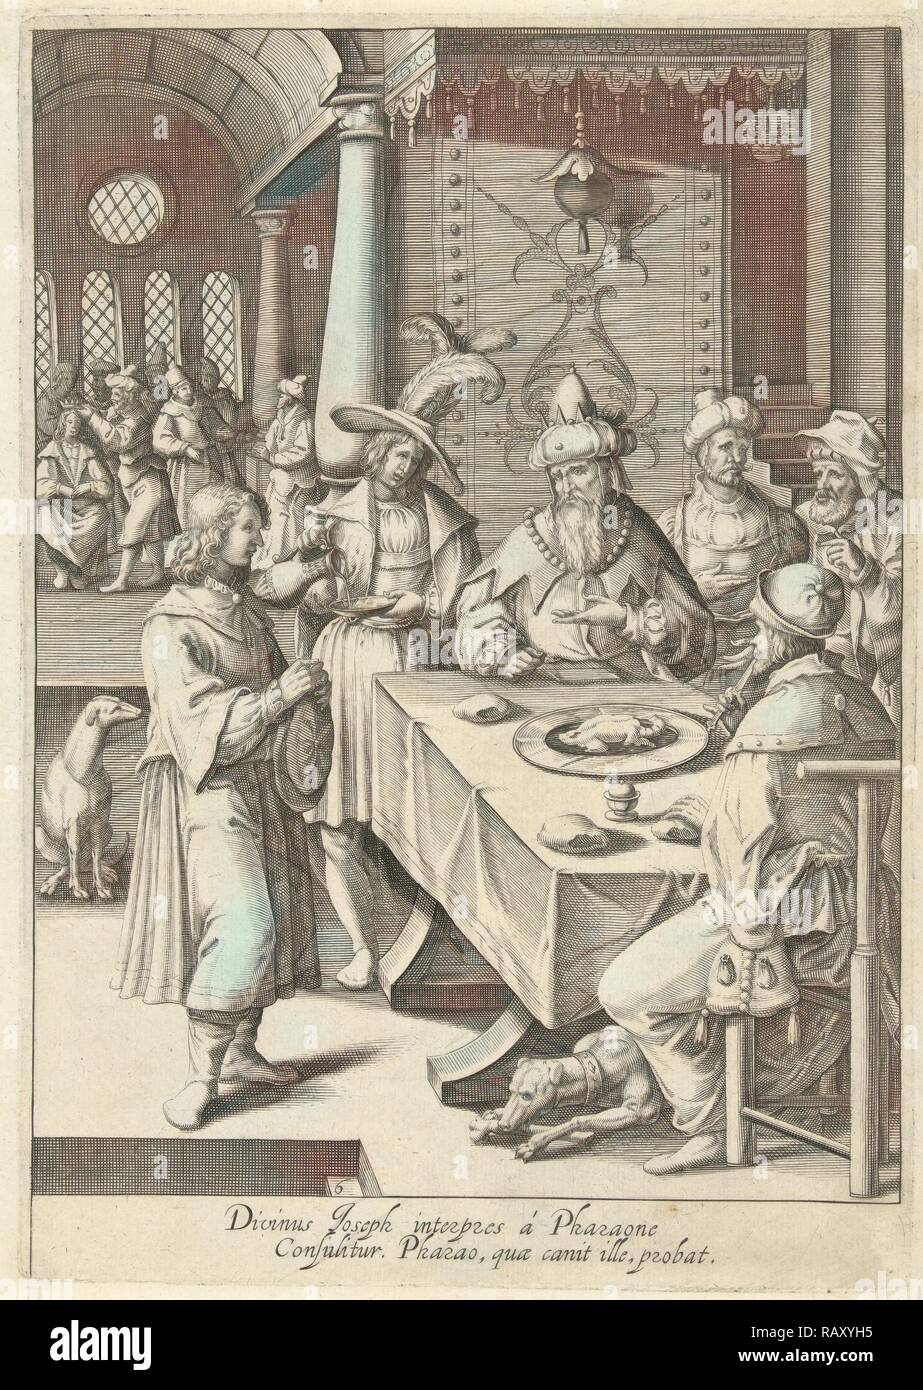 Joseph interprets the dreams of Pharaoh, print maker: Robert de Baudous, Lucas van Leyden, 1591 - 1659. Reimagined - Stock Image